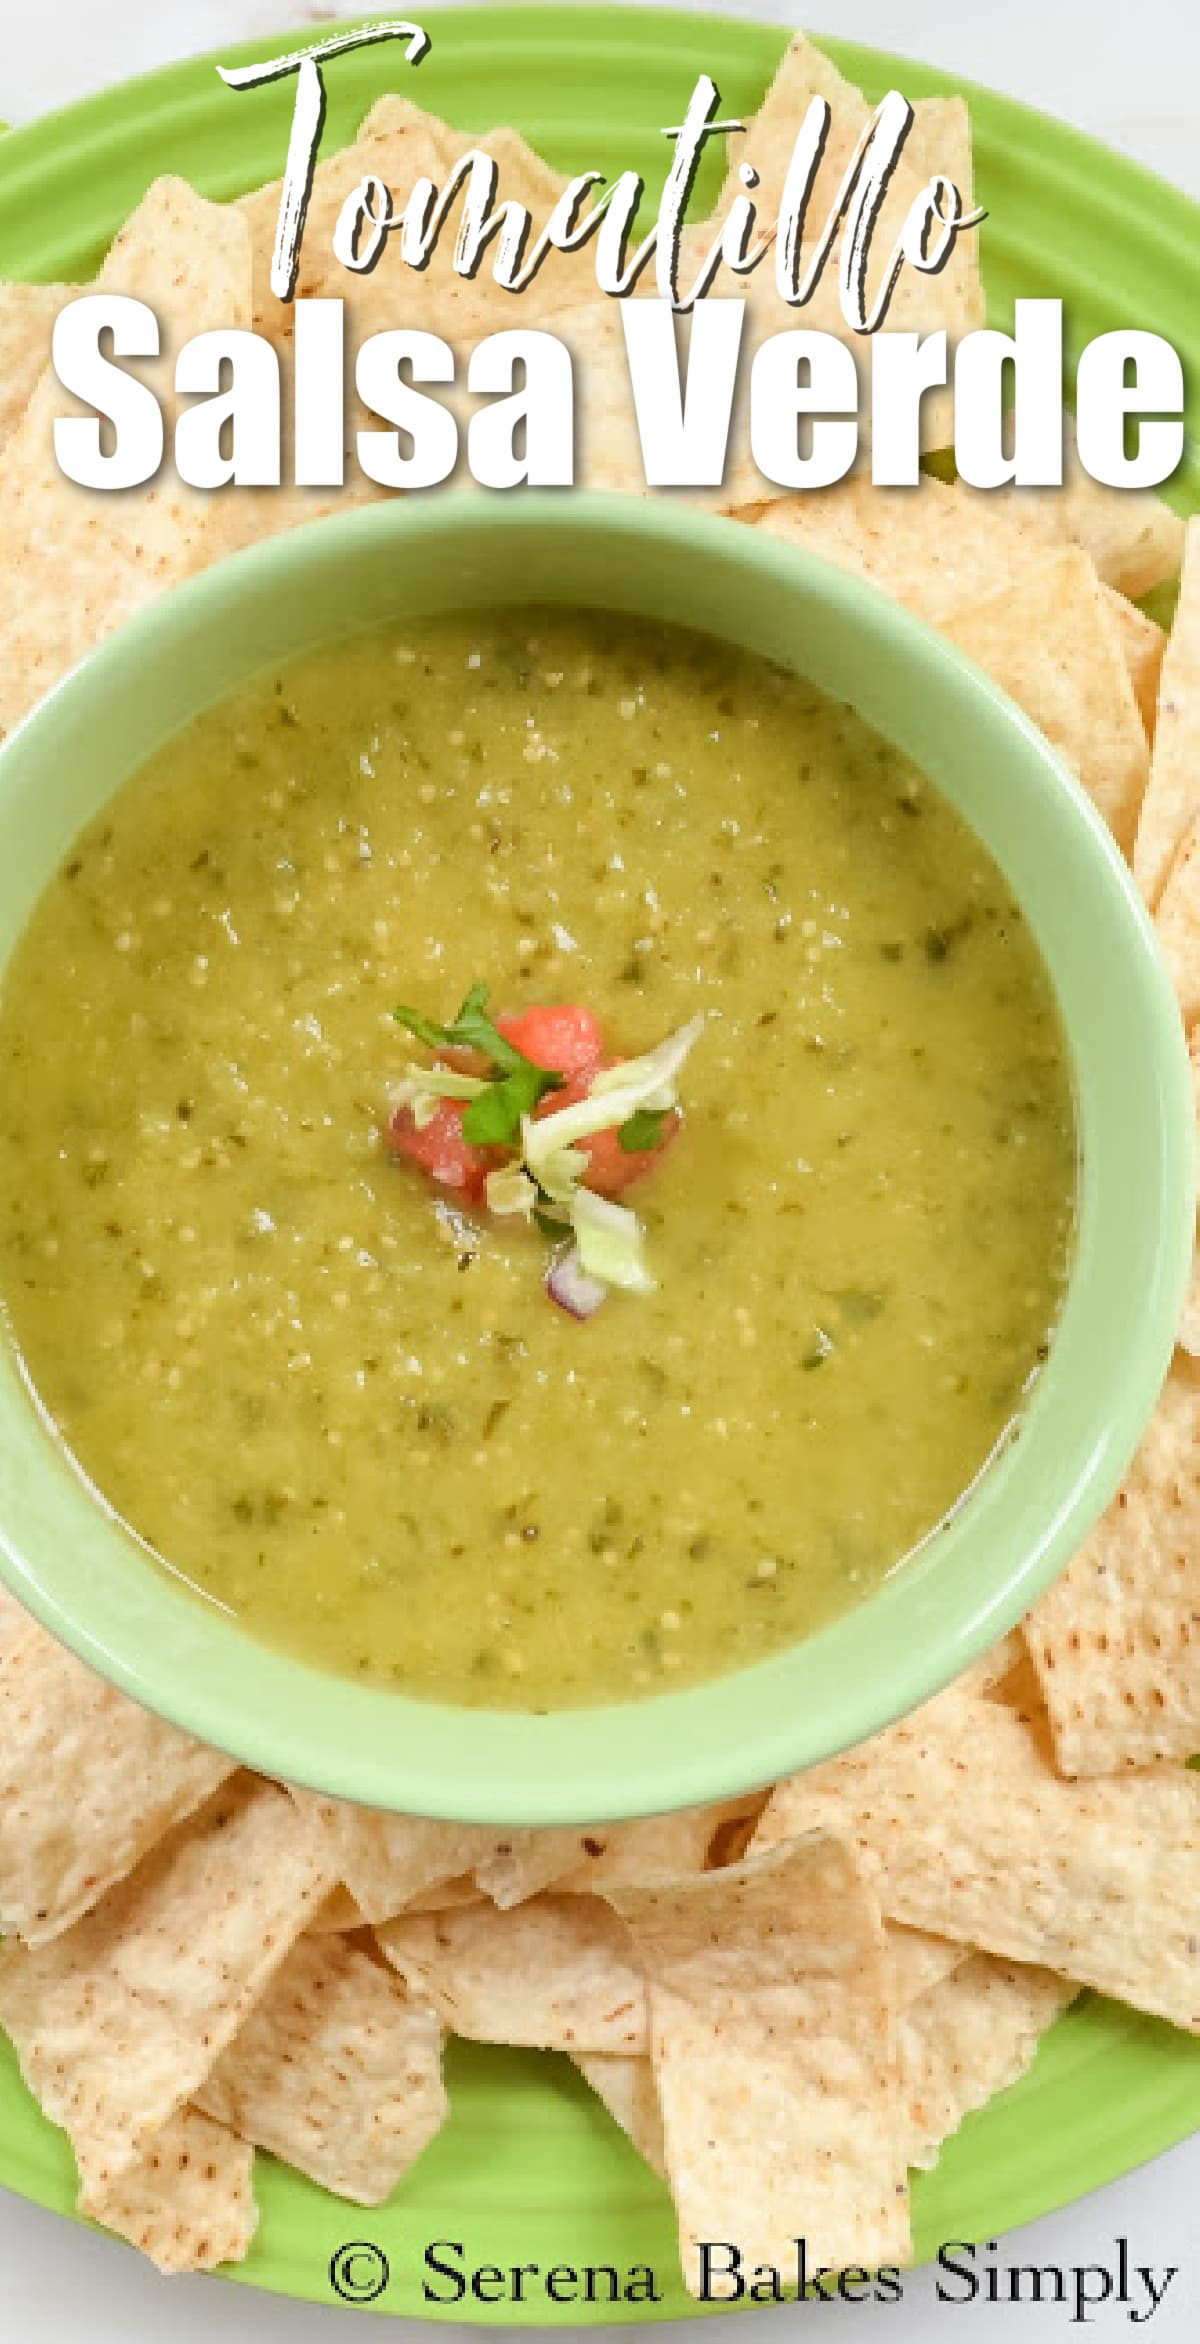 Tomatillo Salsa Verde in a green bowl with chips around the edge. White text at the top of photo Tomatillo Salsa Verde.